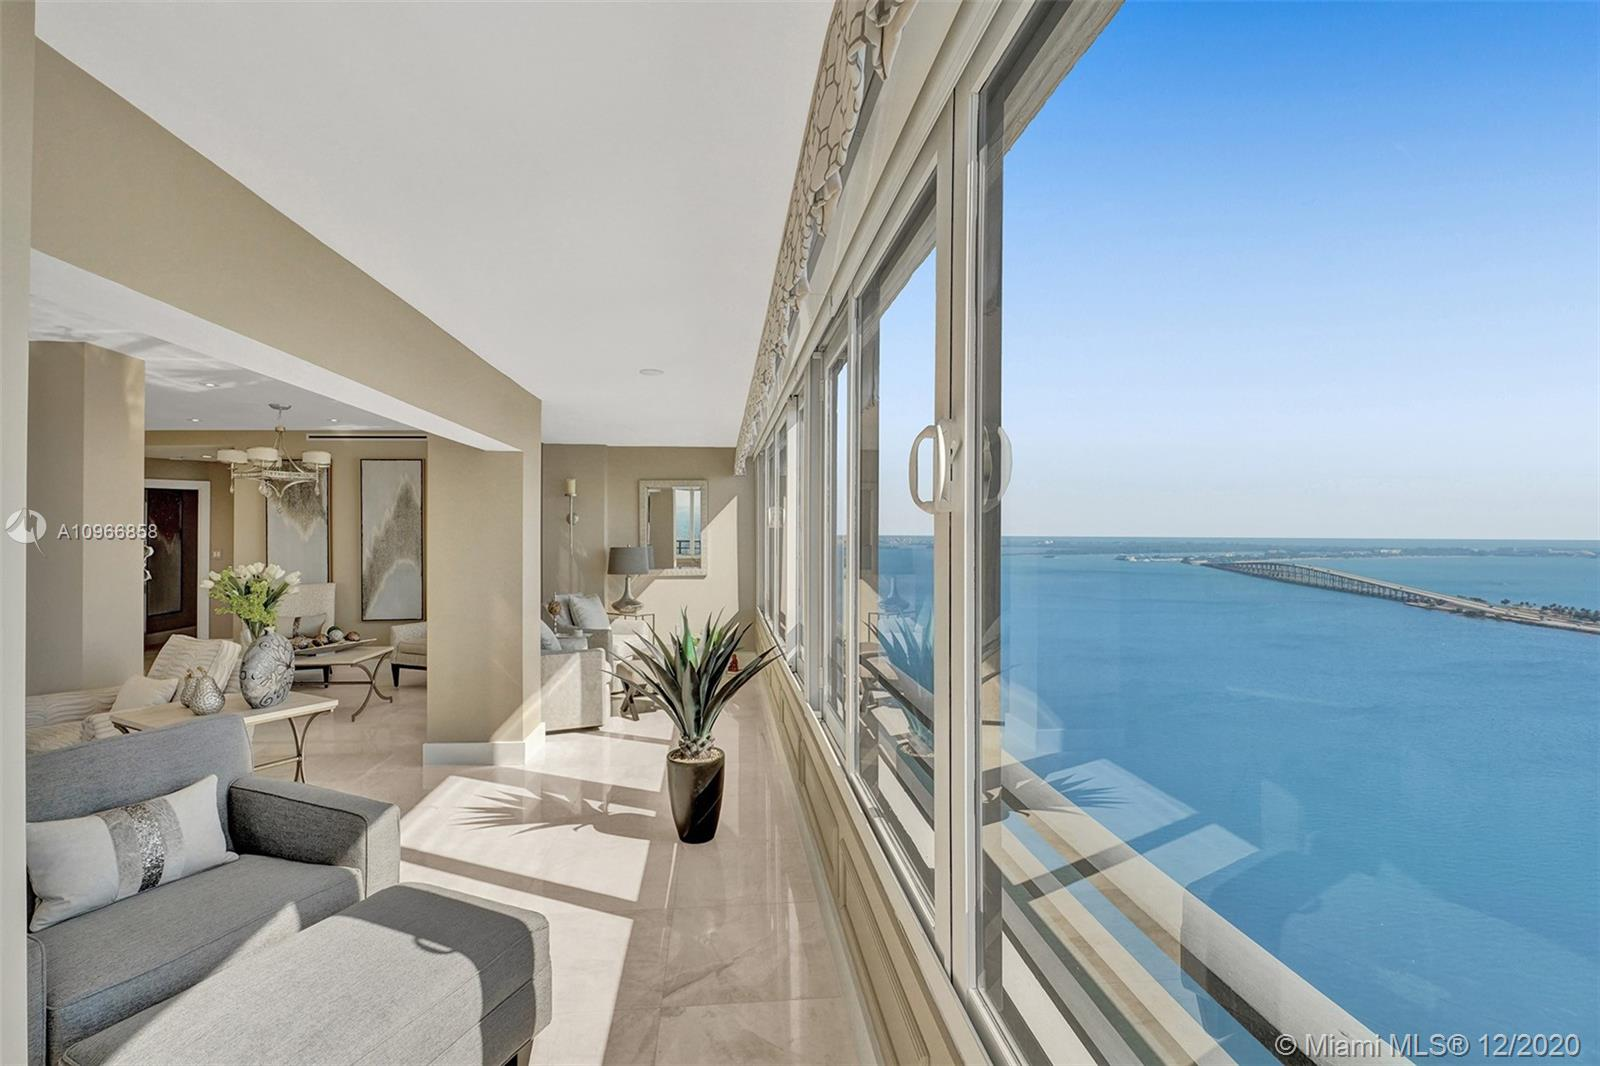 Enjoy Mesmerizing Panoramic Views of the Ocean, Key Biscayne, and Magical City Lights from this Completely Renovated BRICKELL AVENUE Penthouse in the Sky with 3100 SQ FT of Living Space. This Luxurious Penthouse features 3 Ensuite Bedrooms, 3.5 Bathrooms, Master Bedroom with Huge Walk-In Closets, Gorgeous Open Kitchen with top-of-line appliances, Marble Flooring through-out. Full Amenities Building, Olympic Size Pool, 5 Tennis Courts, Fitness Center with His & Hers Spa, 24-HR Security. 2 Assigned Parking Spaces. Minutes away from Beaches, Financial District, Fine Dining & Shopping.